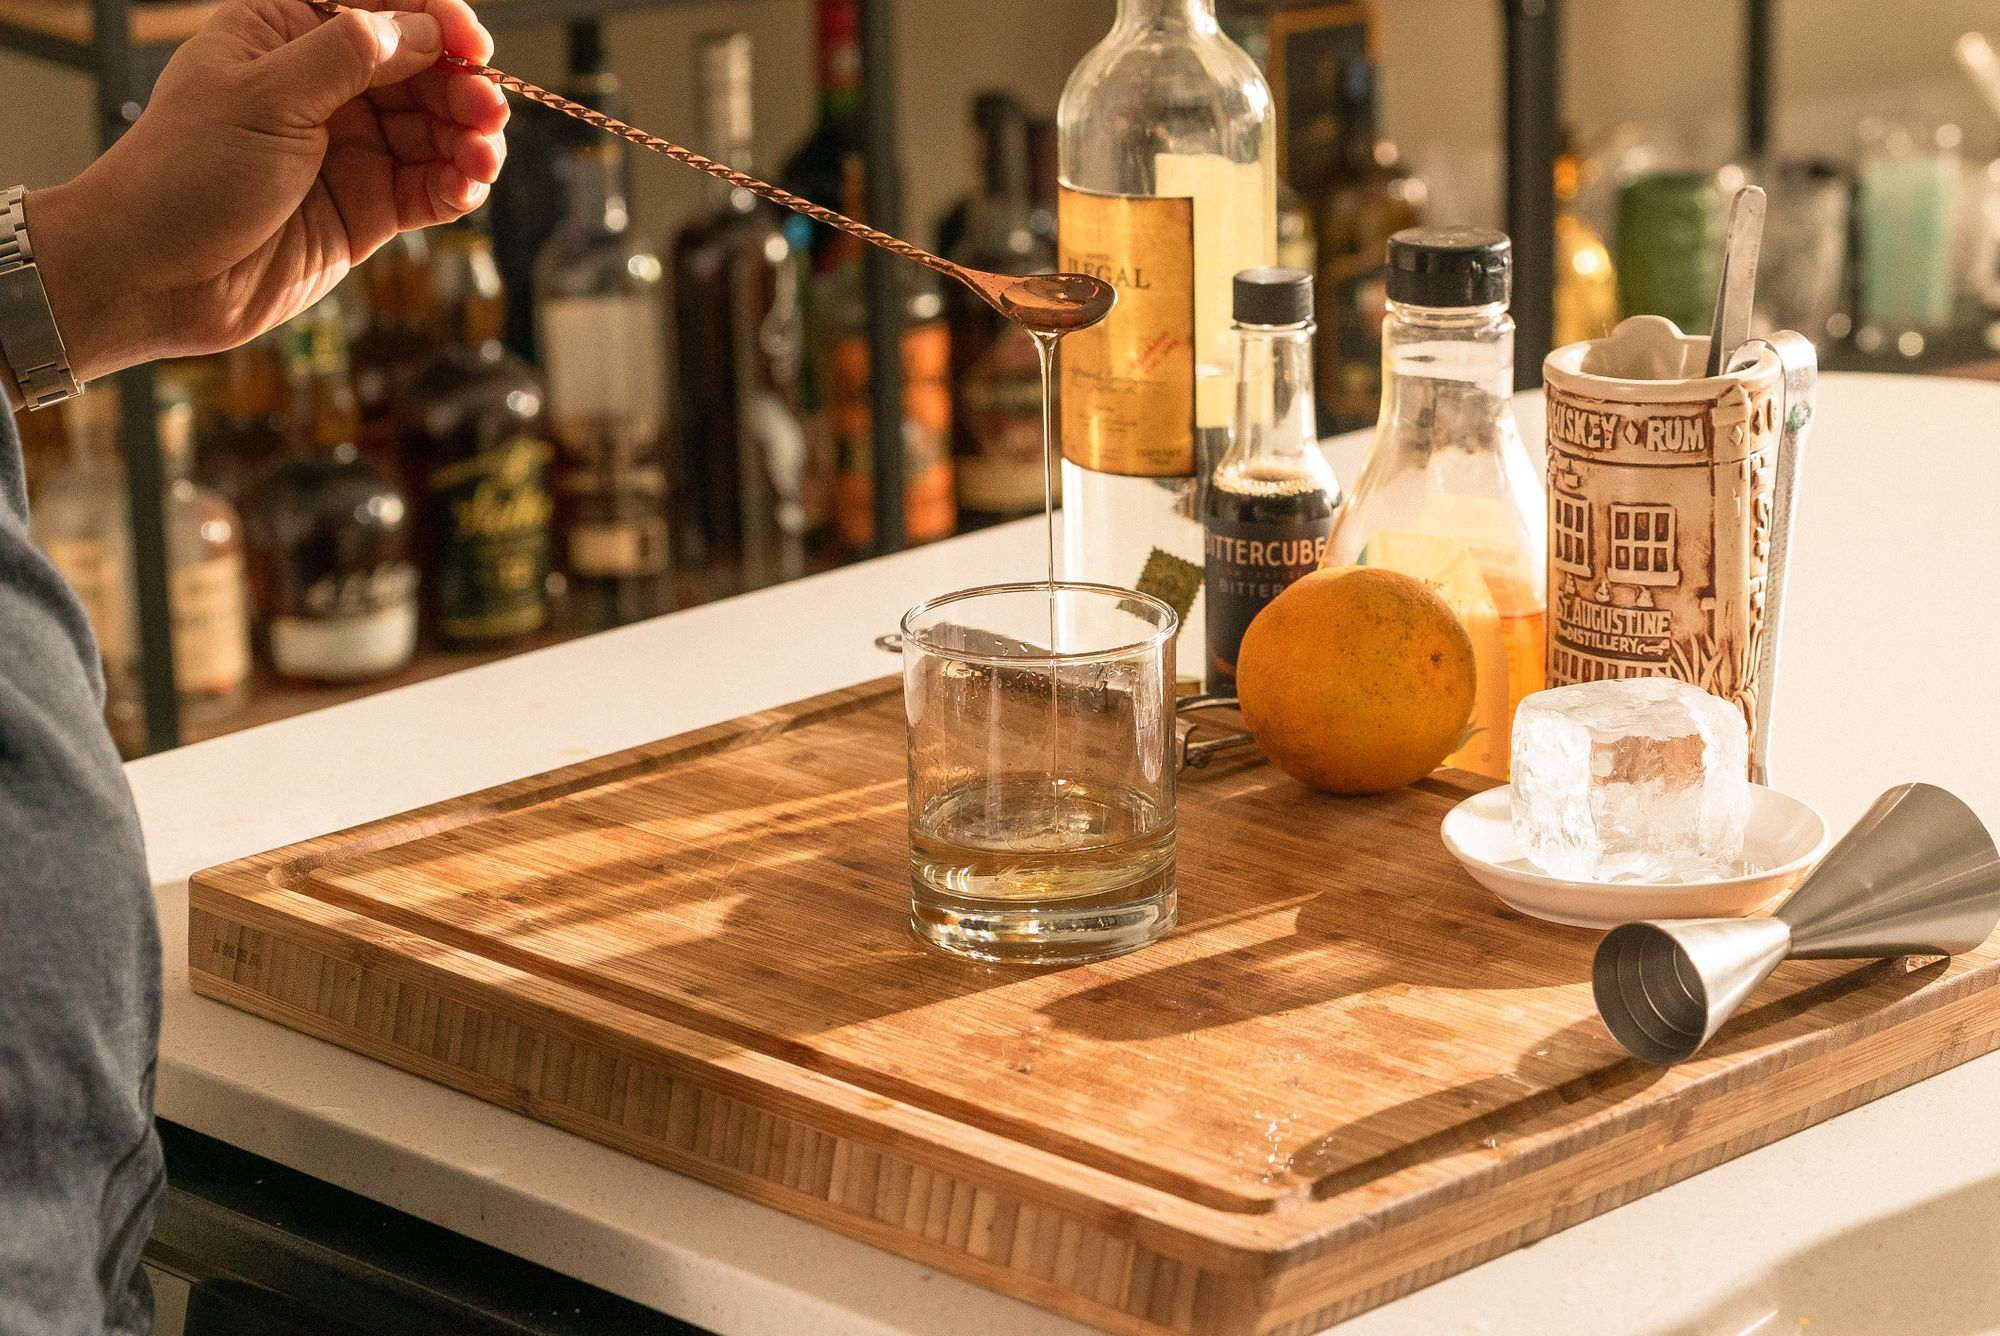 adding a barspoon of agave syrup to the rocks glass